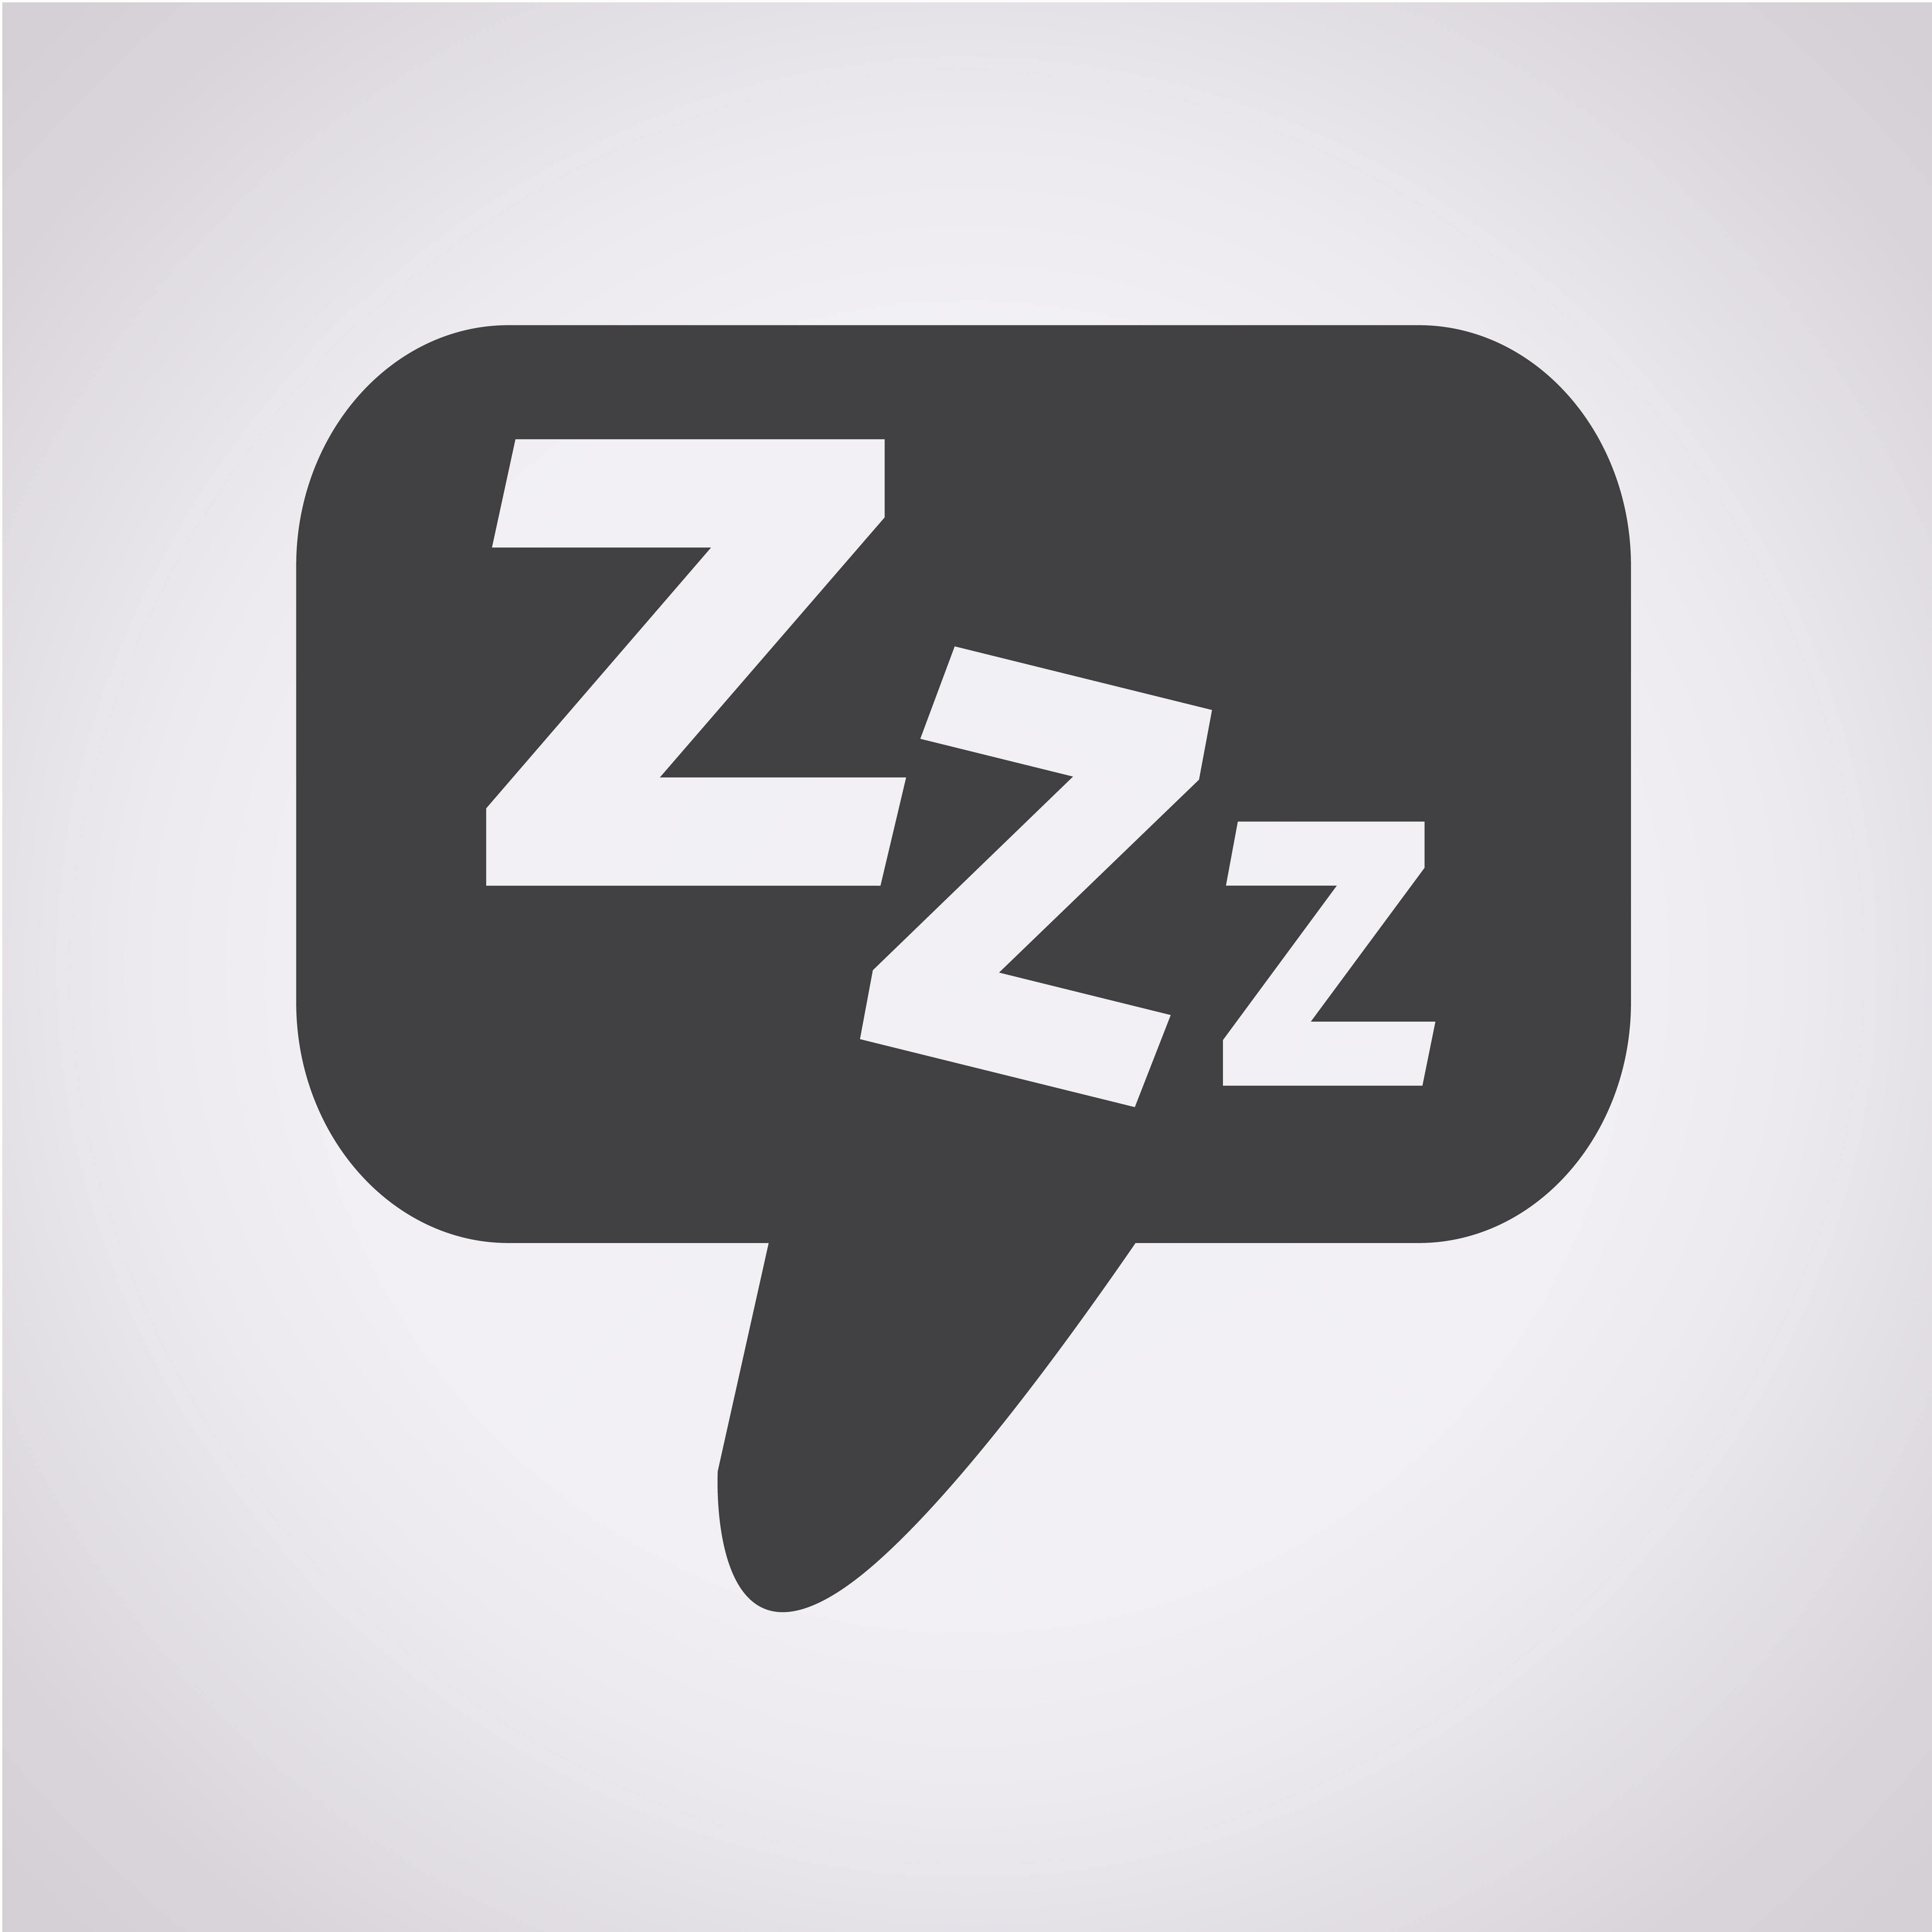 Sleep Icon Symbol Sign Download Free Vectors Clipart